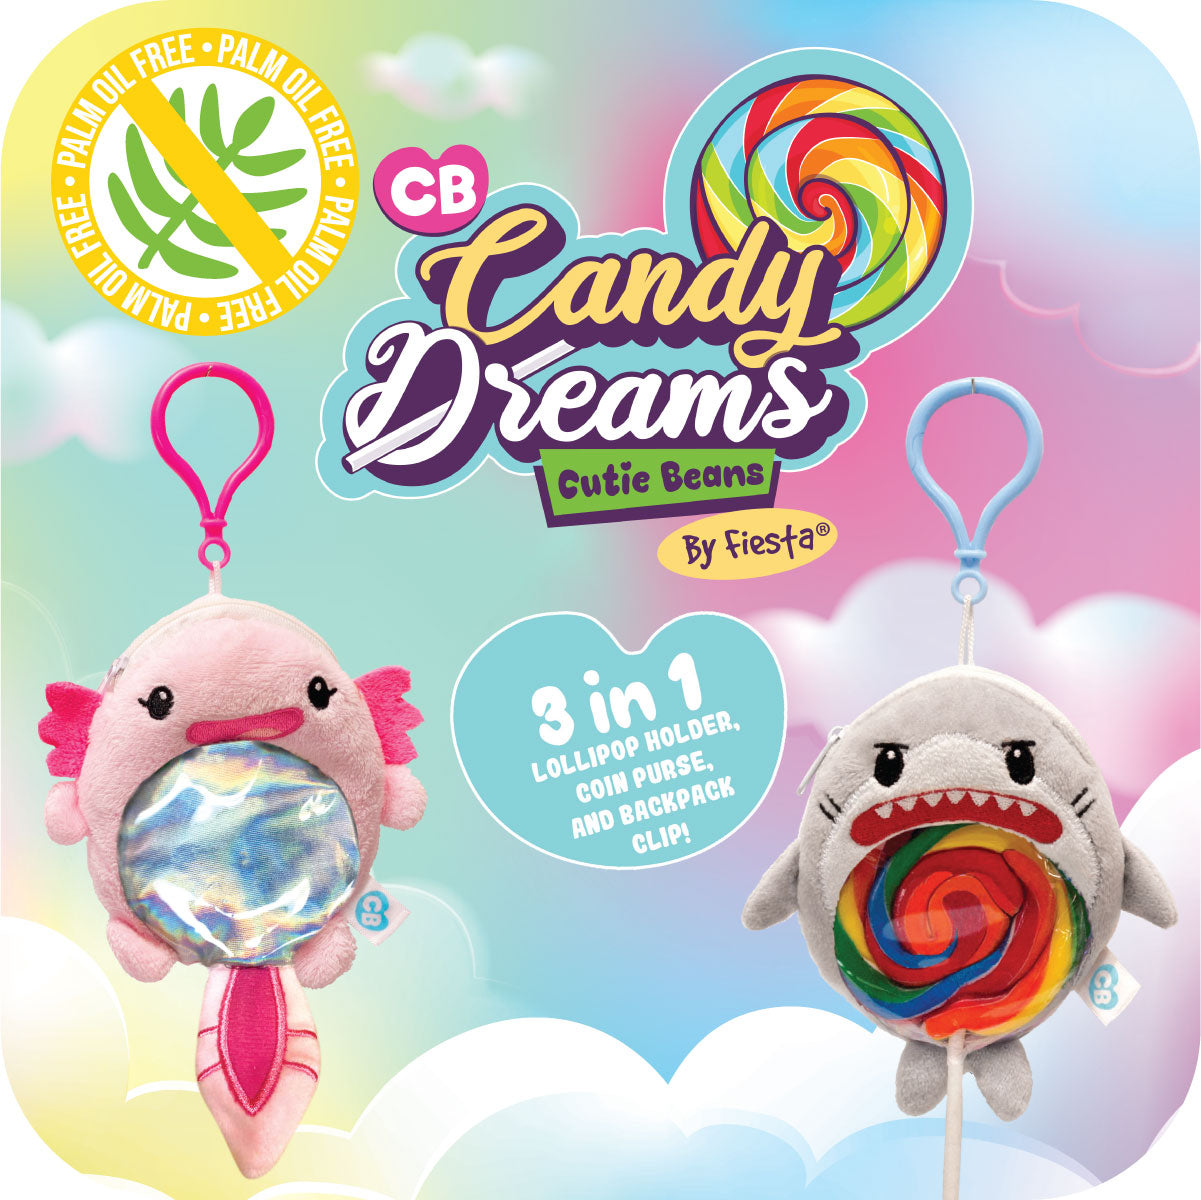 CB Candy Dreams